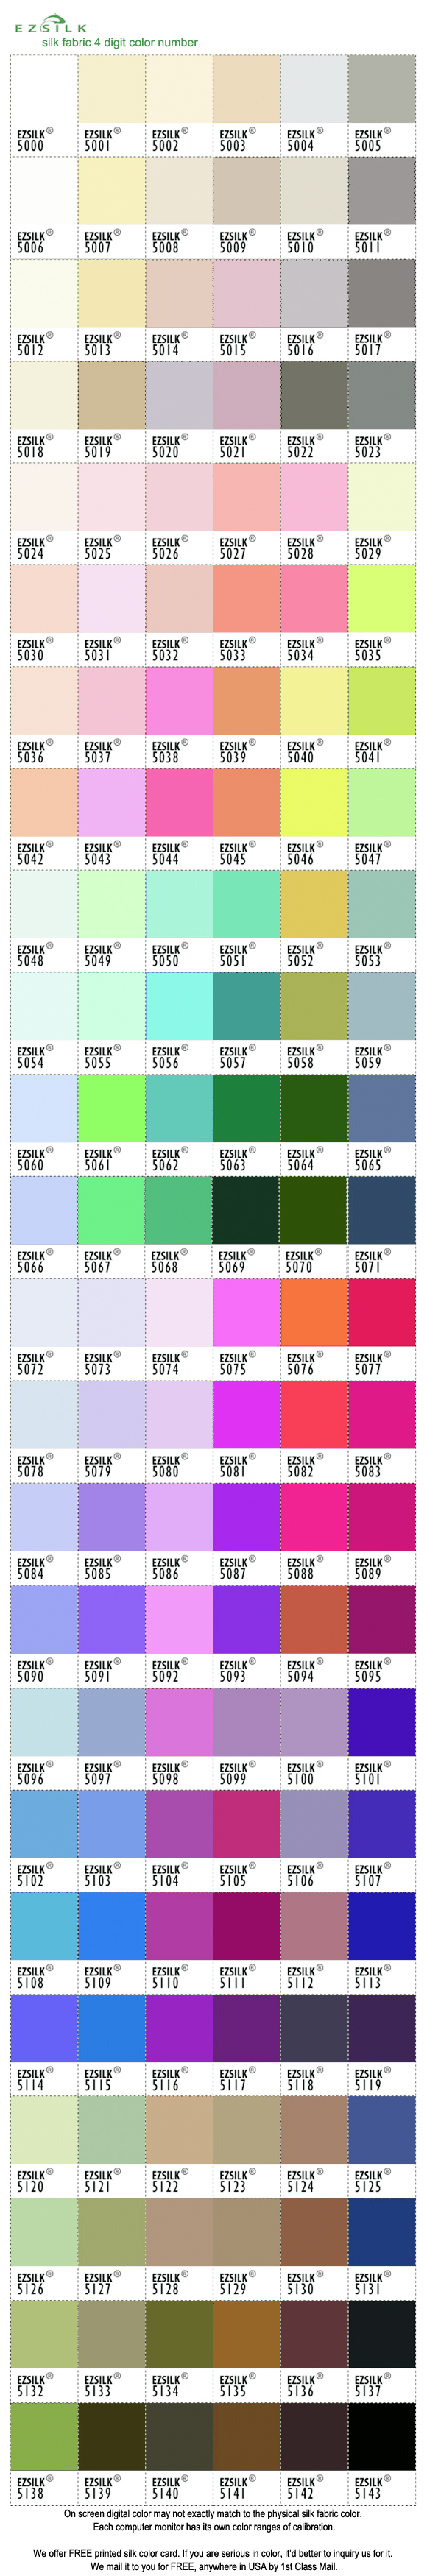 silk color card 144 colors